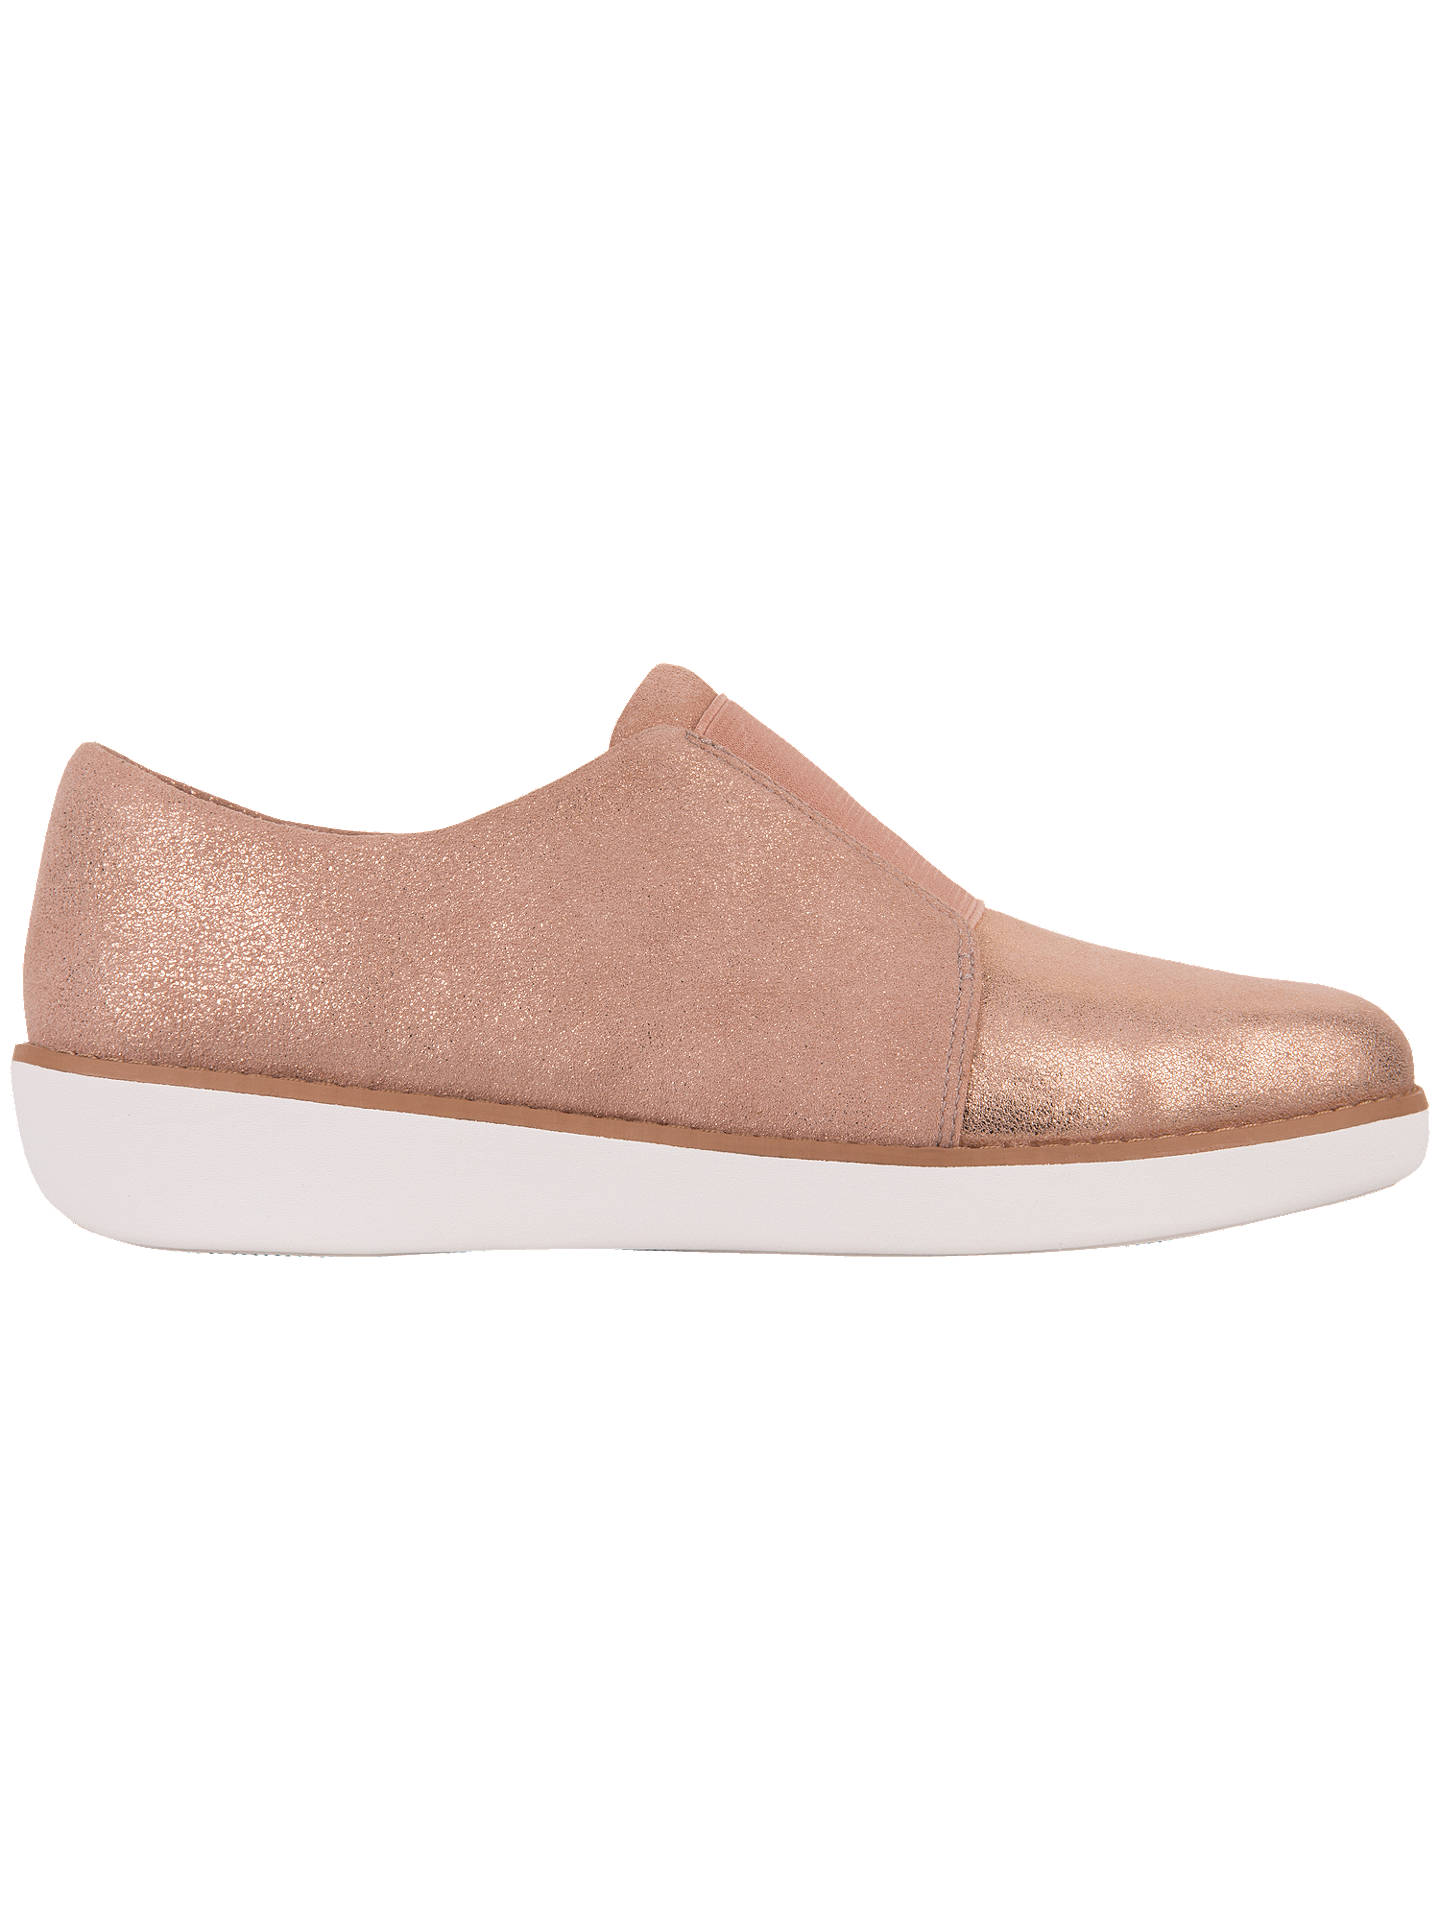 33040599dc76 Buy Fitflop Derby Laceless Slip On Shoes